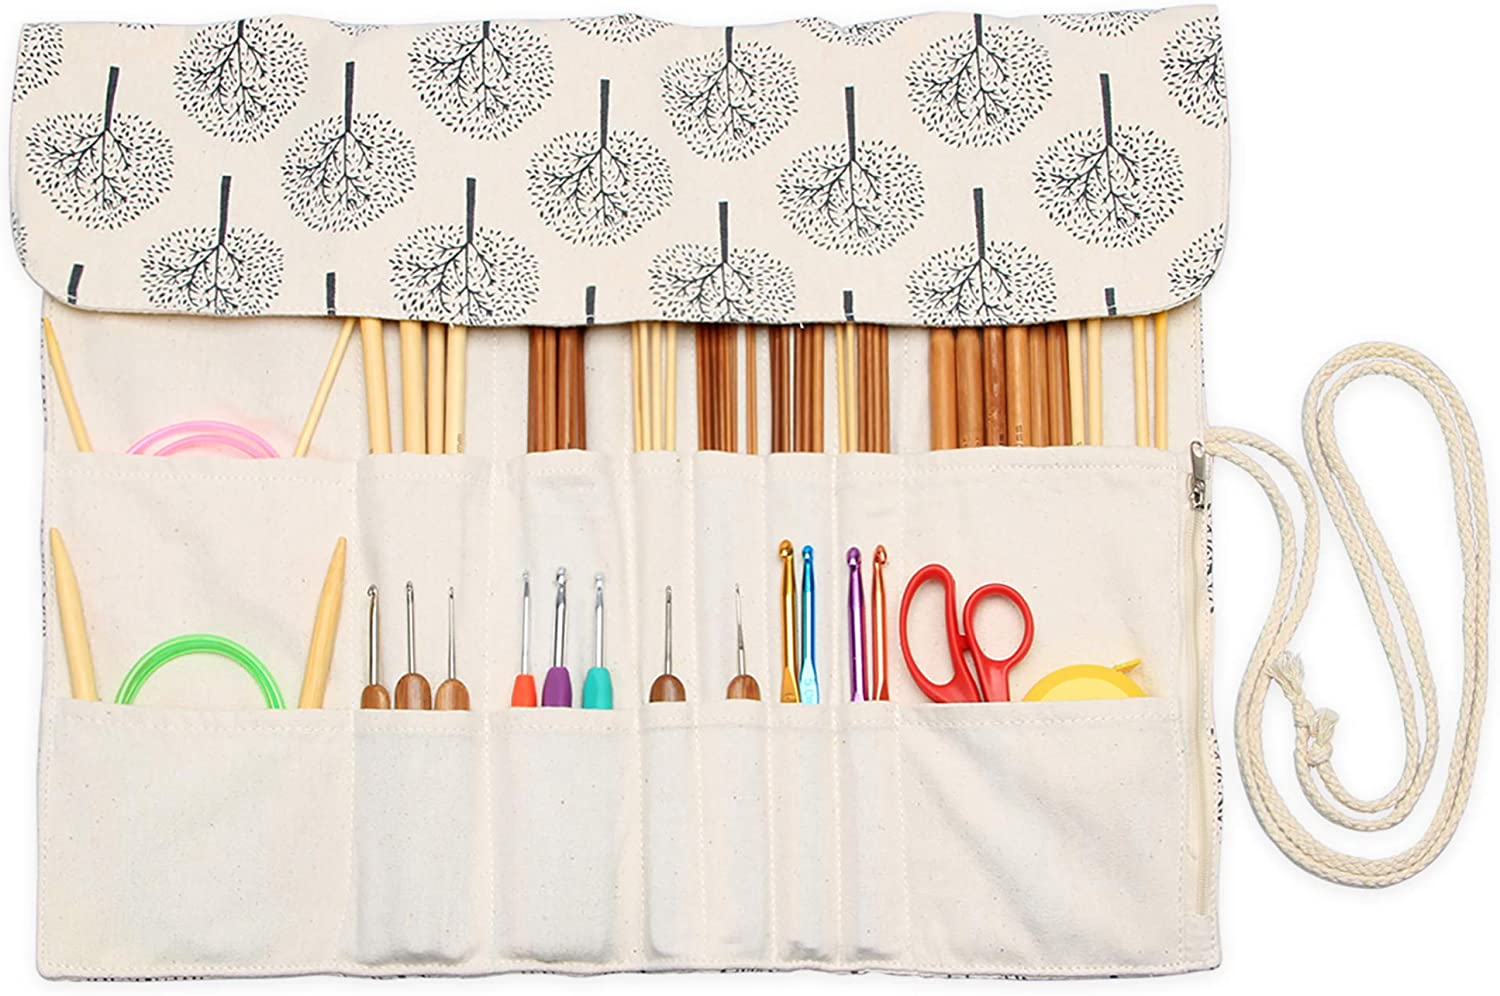 Pink Hanging Knitting Needles Storage Organizer Up to 14 Inch Rolling Knitting Needles Holder Case for Circular and Straight Knitting Needles,